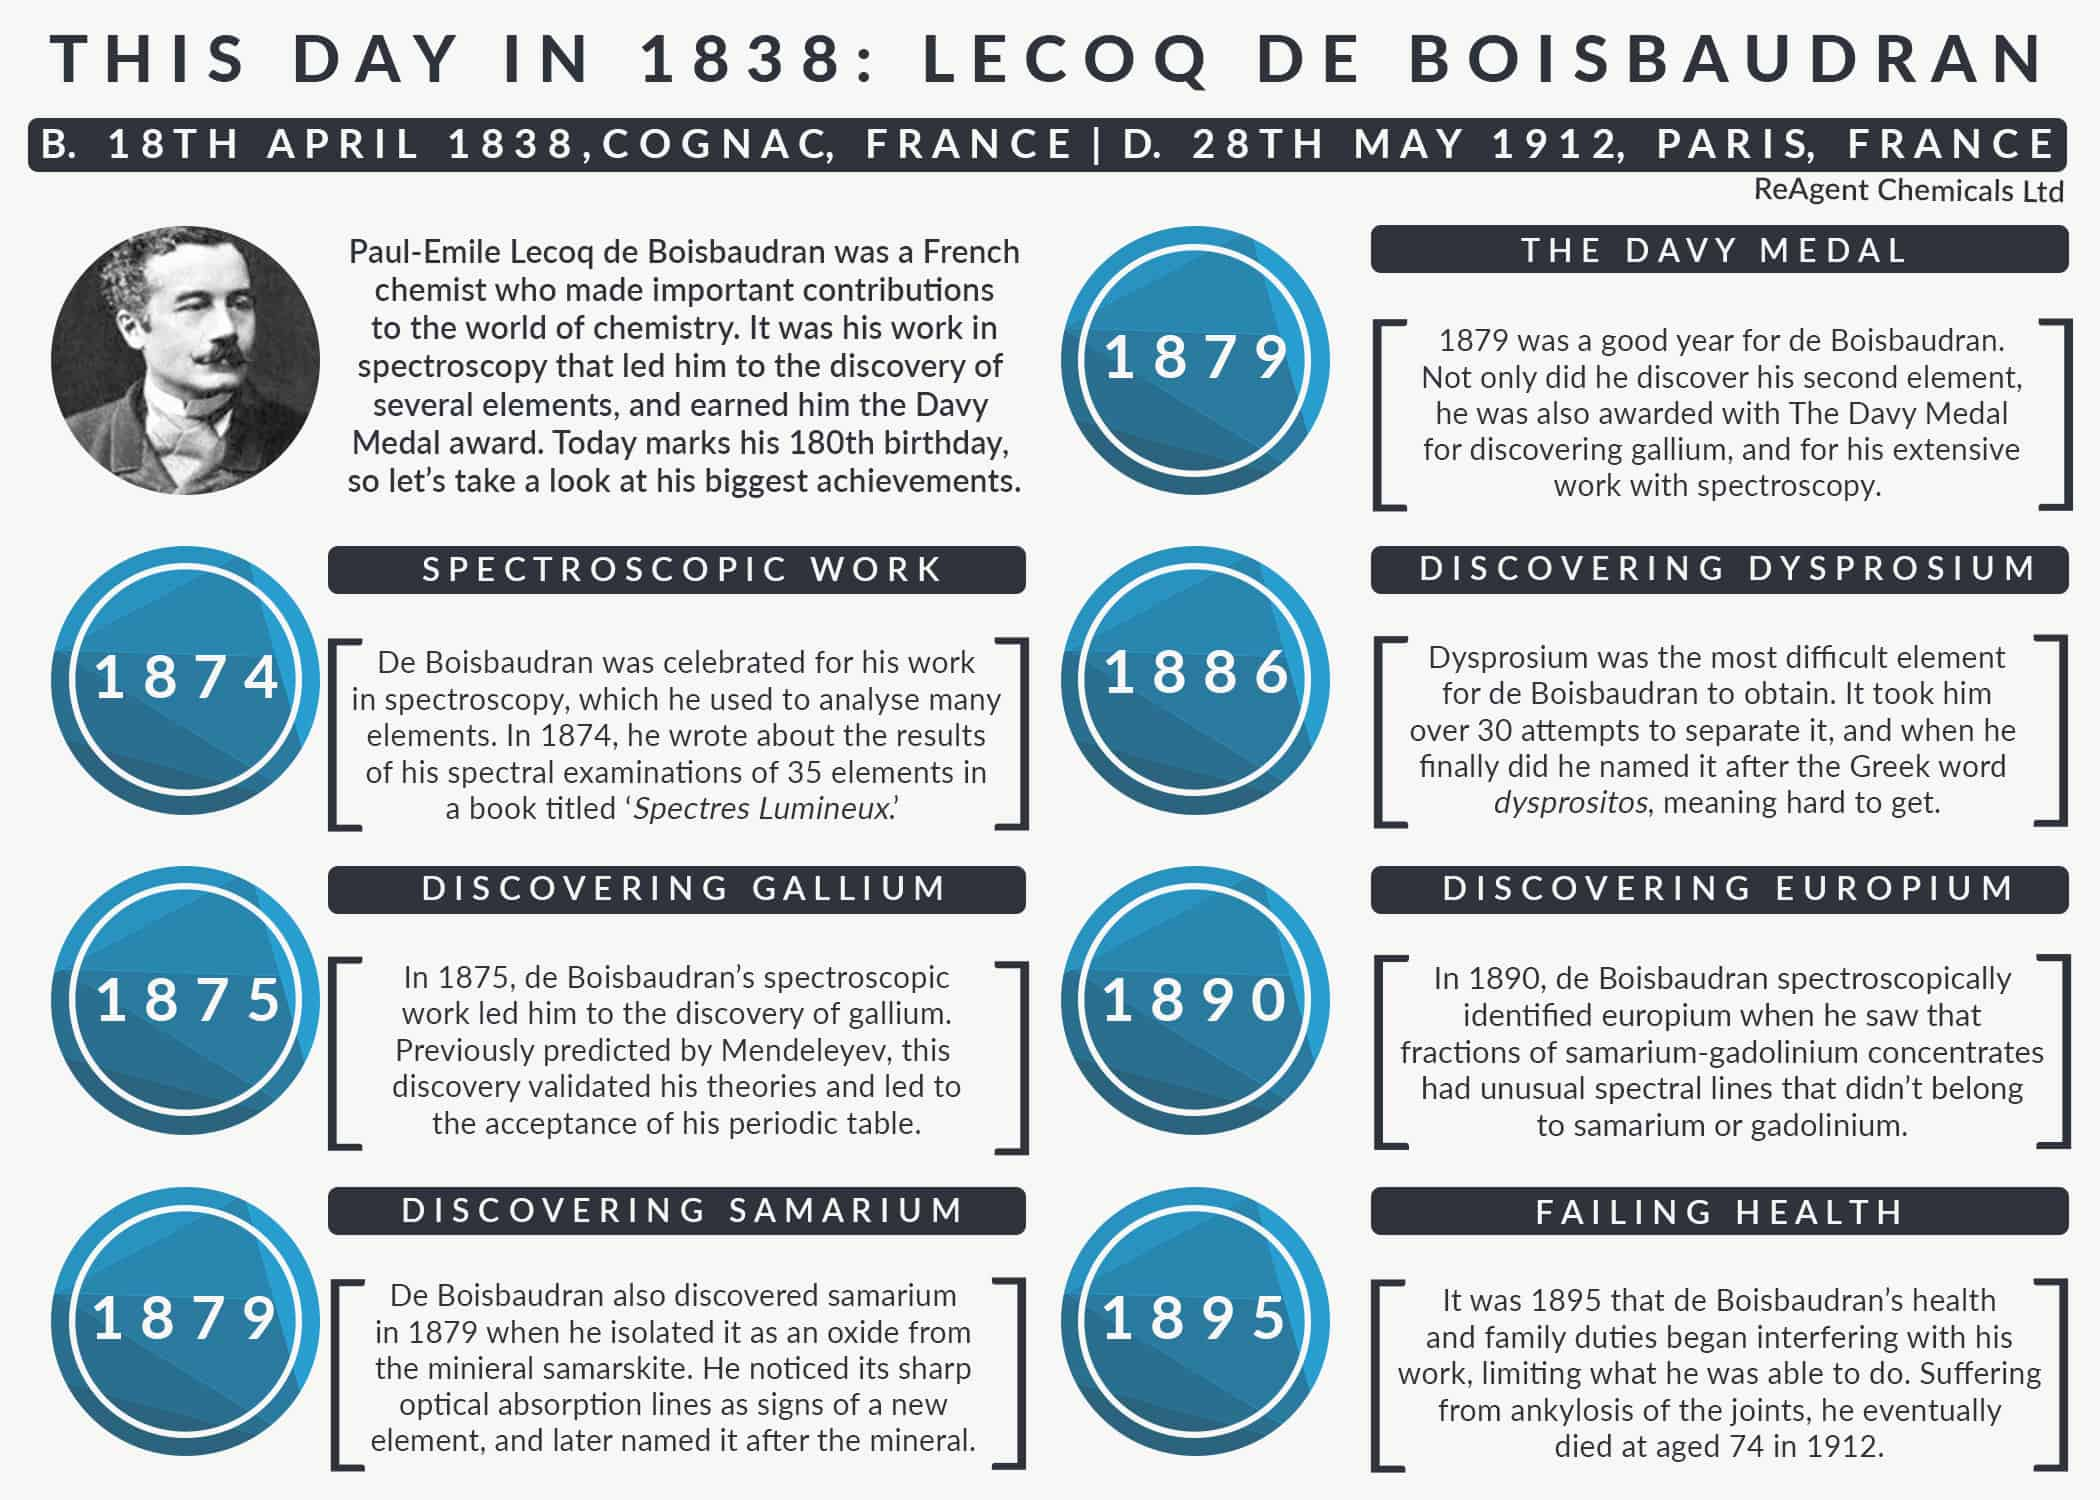 An infographic showing the achievements of French chemist, Paul-Émile Lecoq de Boisbaudran